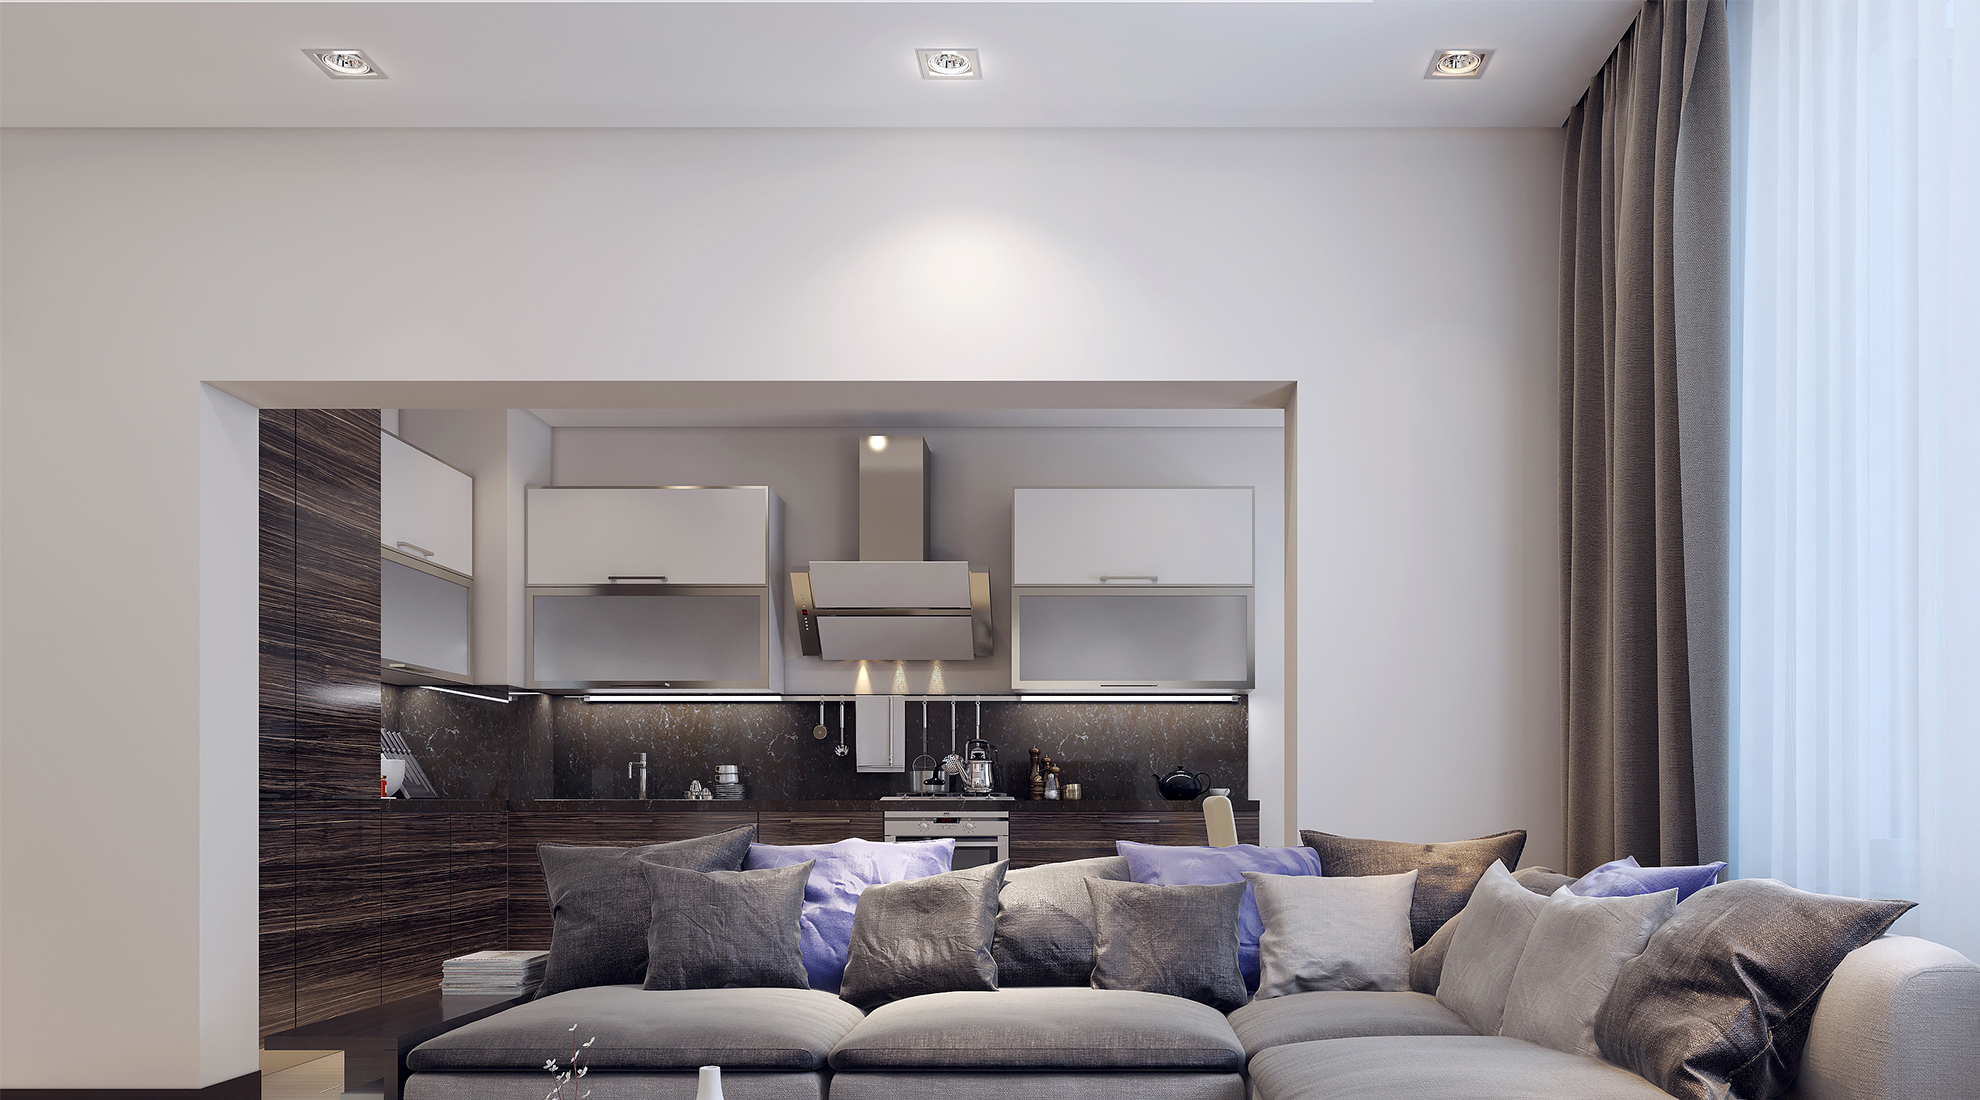 Recessed Lighting Guide How To Buy Recessed Lighting At